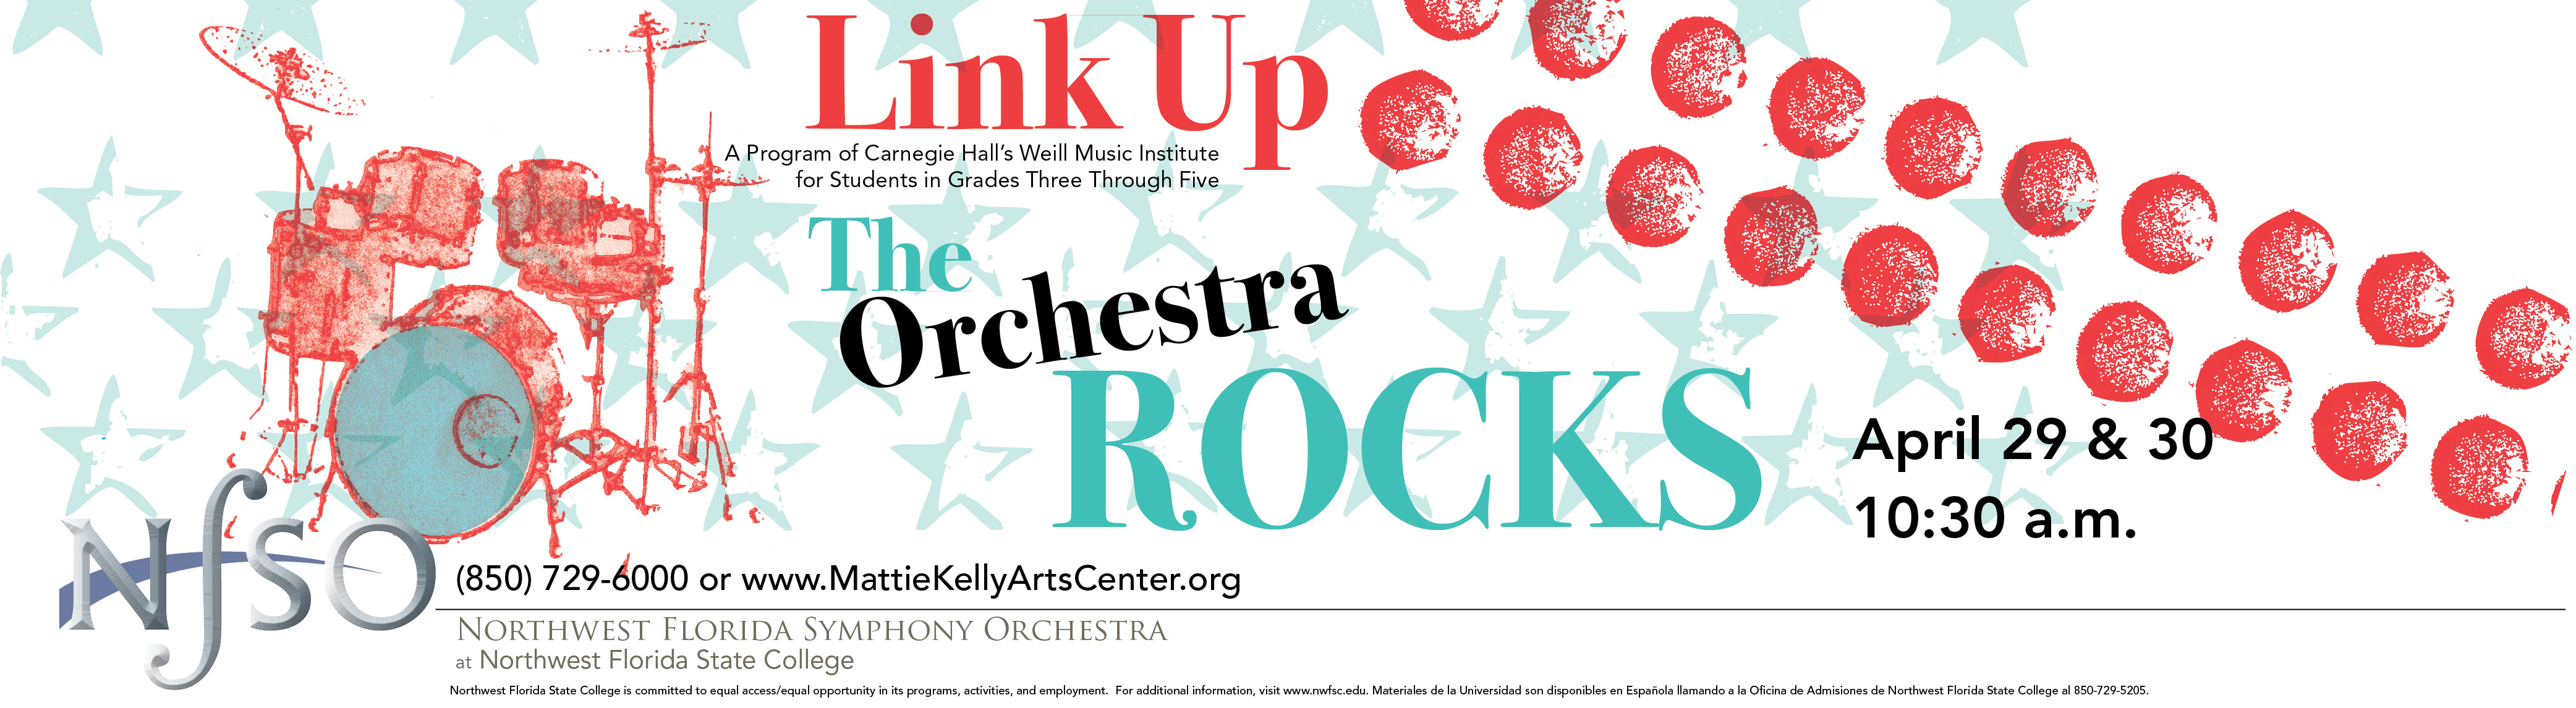 NFSO Orchestra Rocks | April 29 and 30